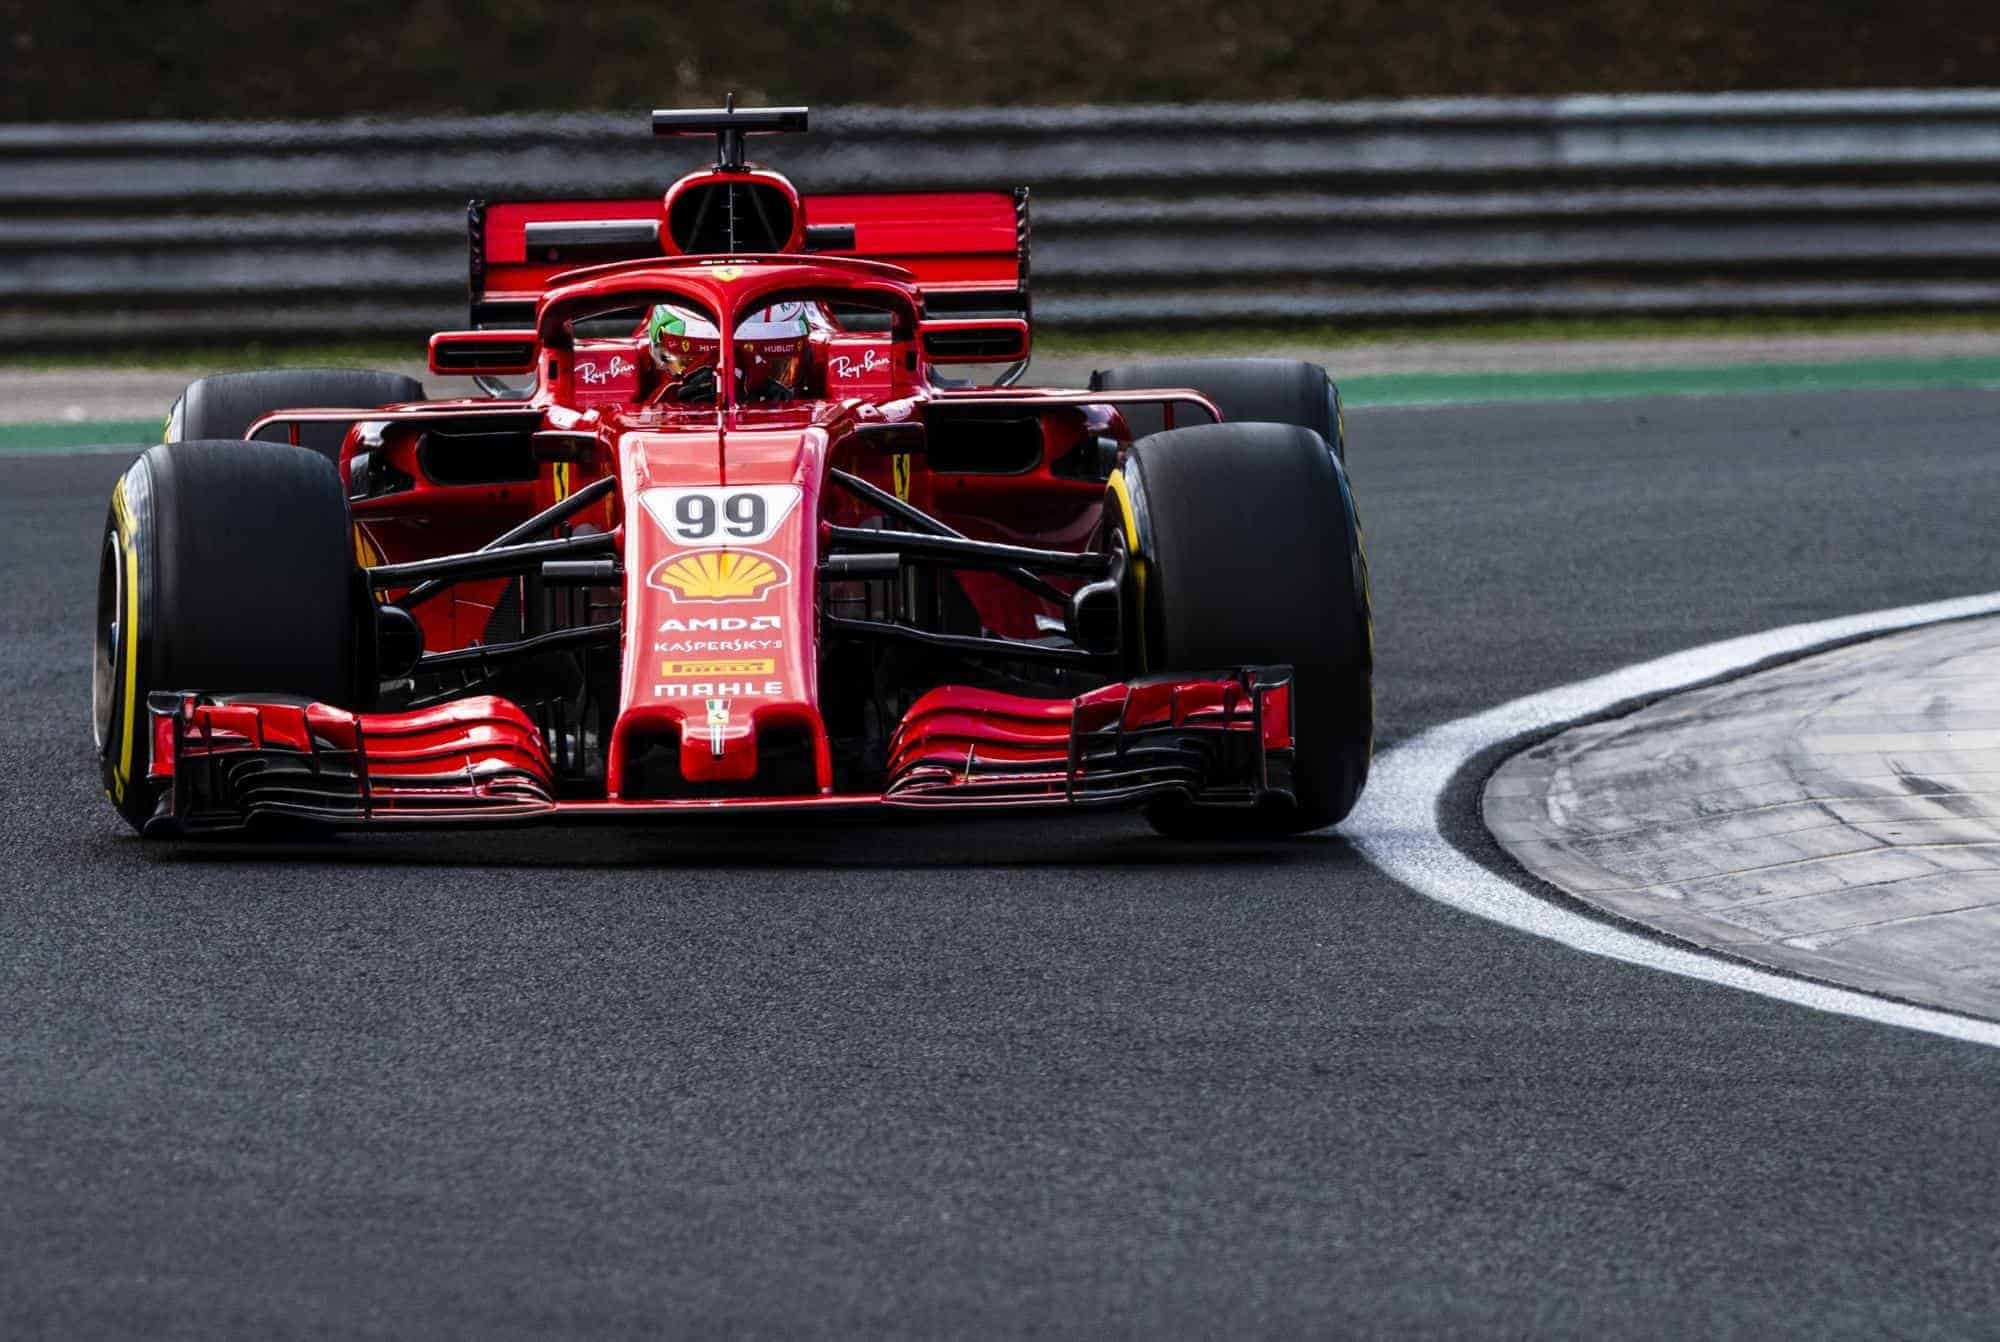 Antonio Giovinazzi Ferrari SF71H Hungaroring test day 1 Photo Ferrari